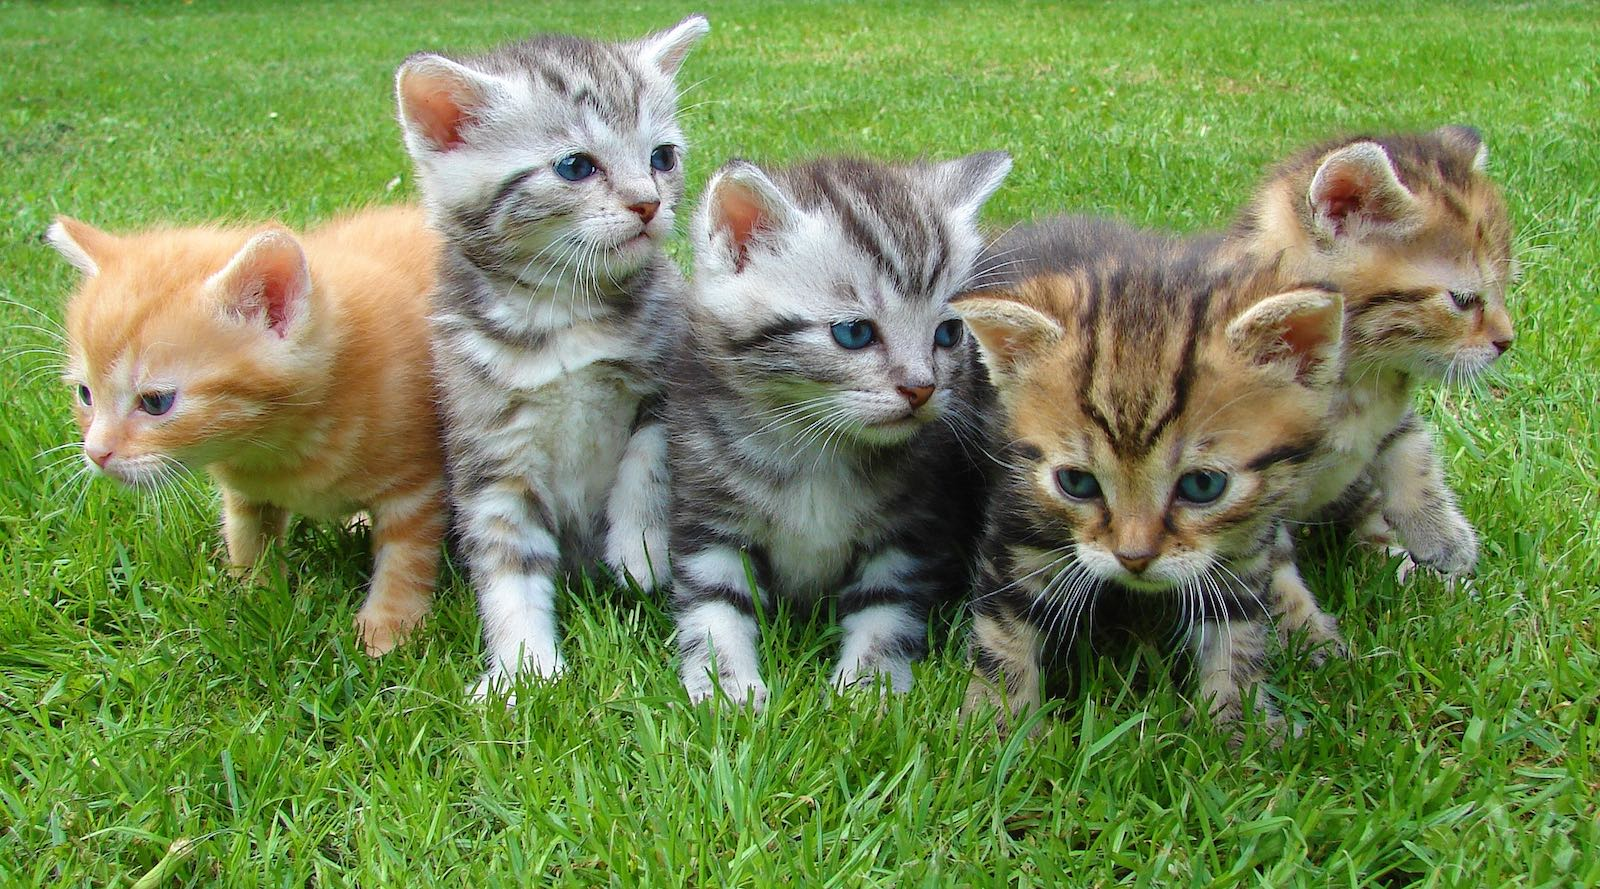 files/images/animals-cats-cute-45170-2.jpg